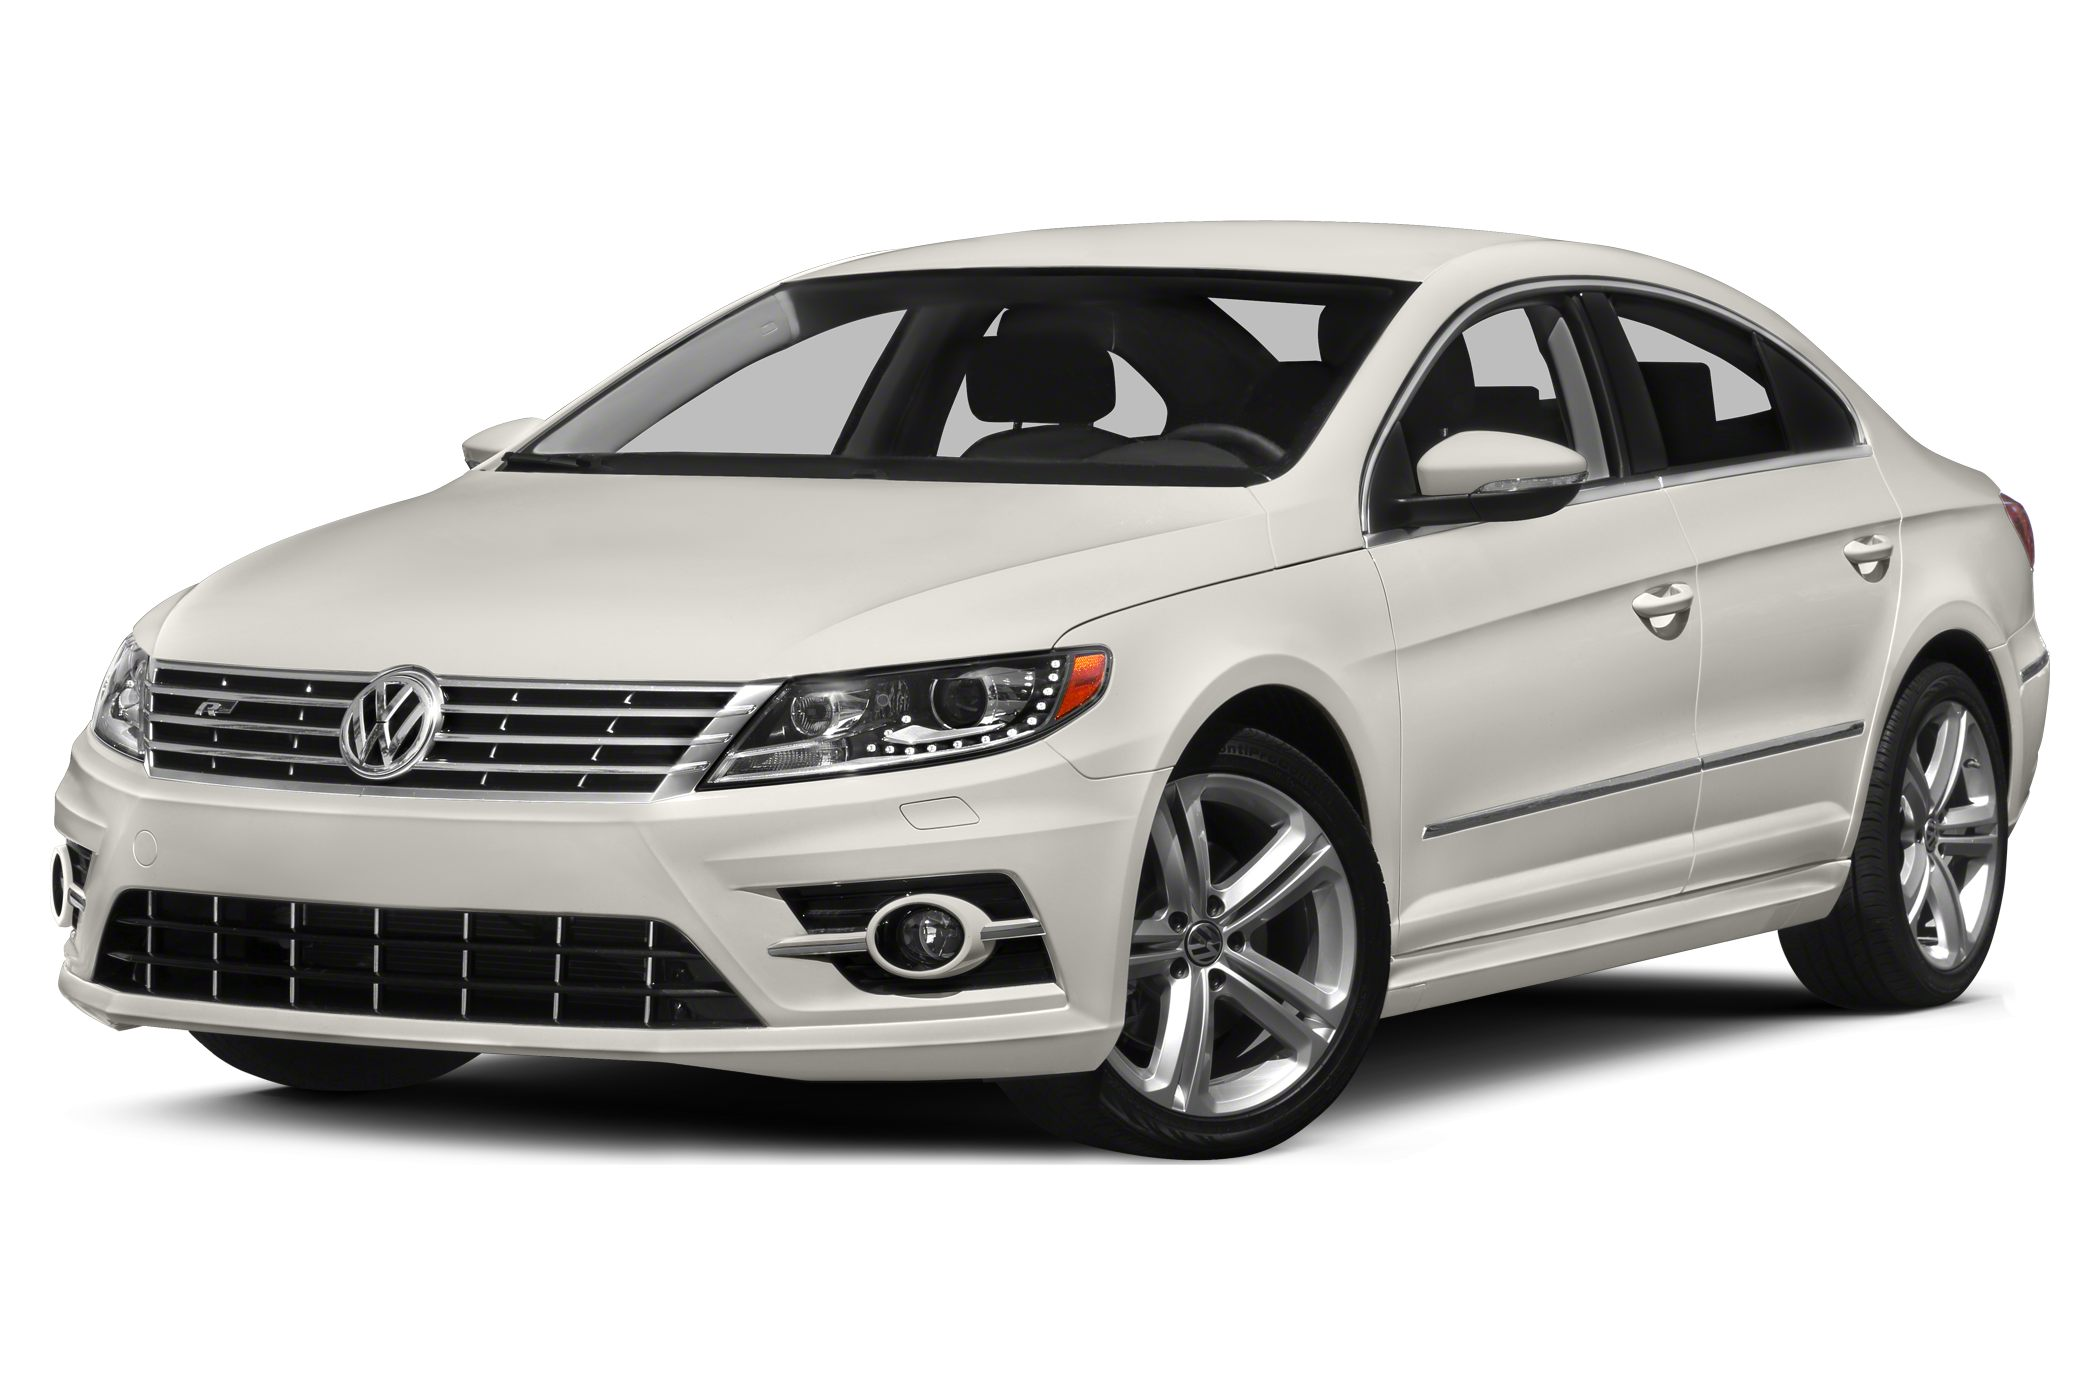 2014 Volkswagen CC 2.0T R-Line Sedan for sale in Watertown for $30,582 with 1 miles.